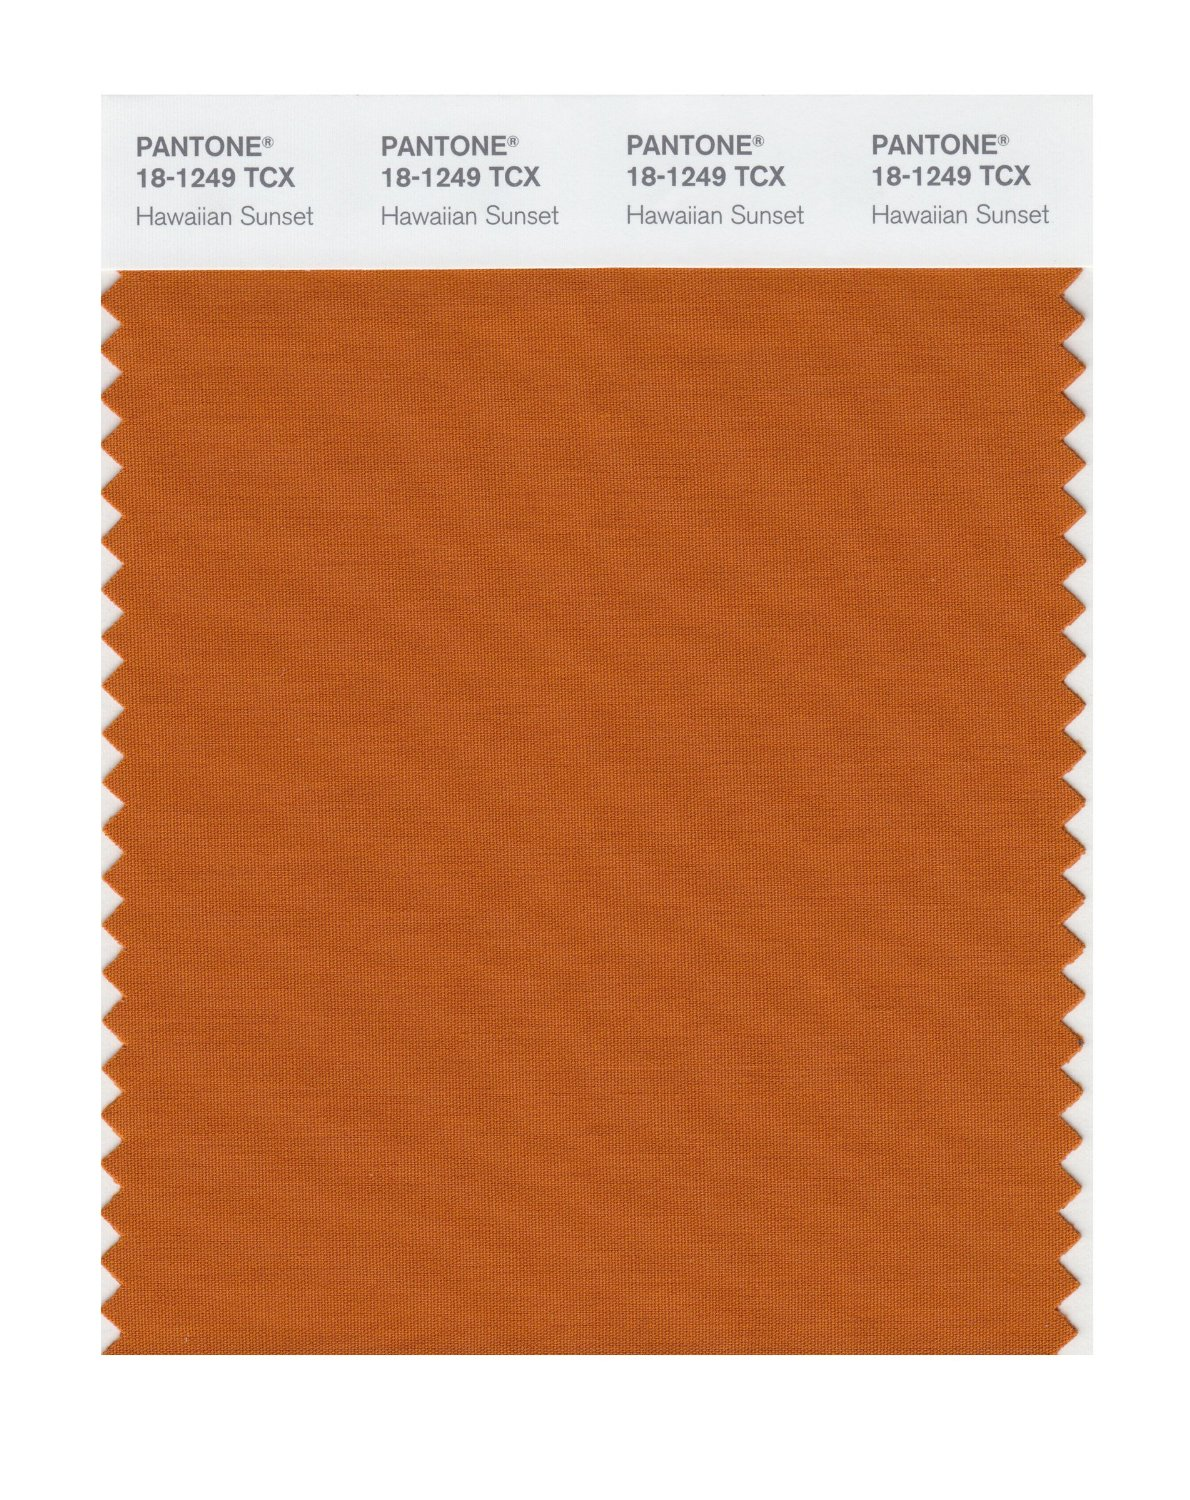 Pantone Smart Swatch 18-1249 Hawaiian Sunset